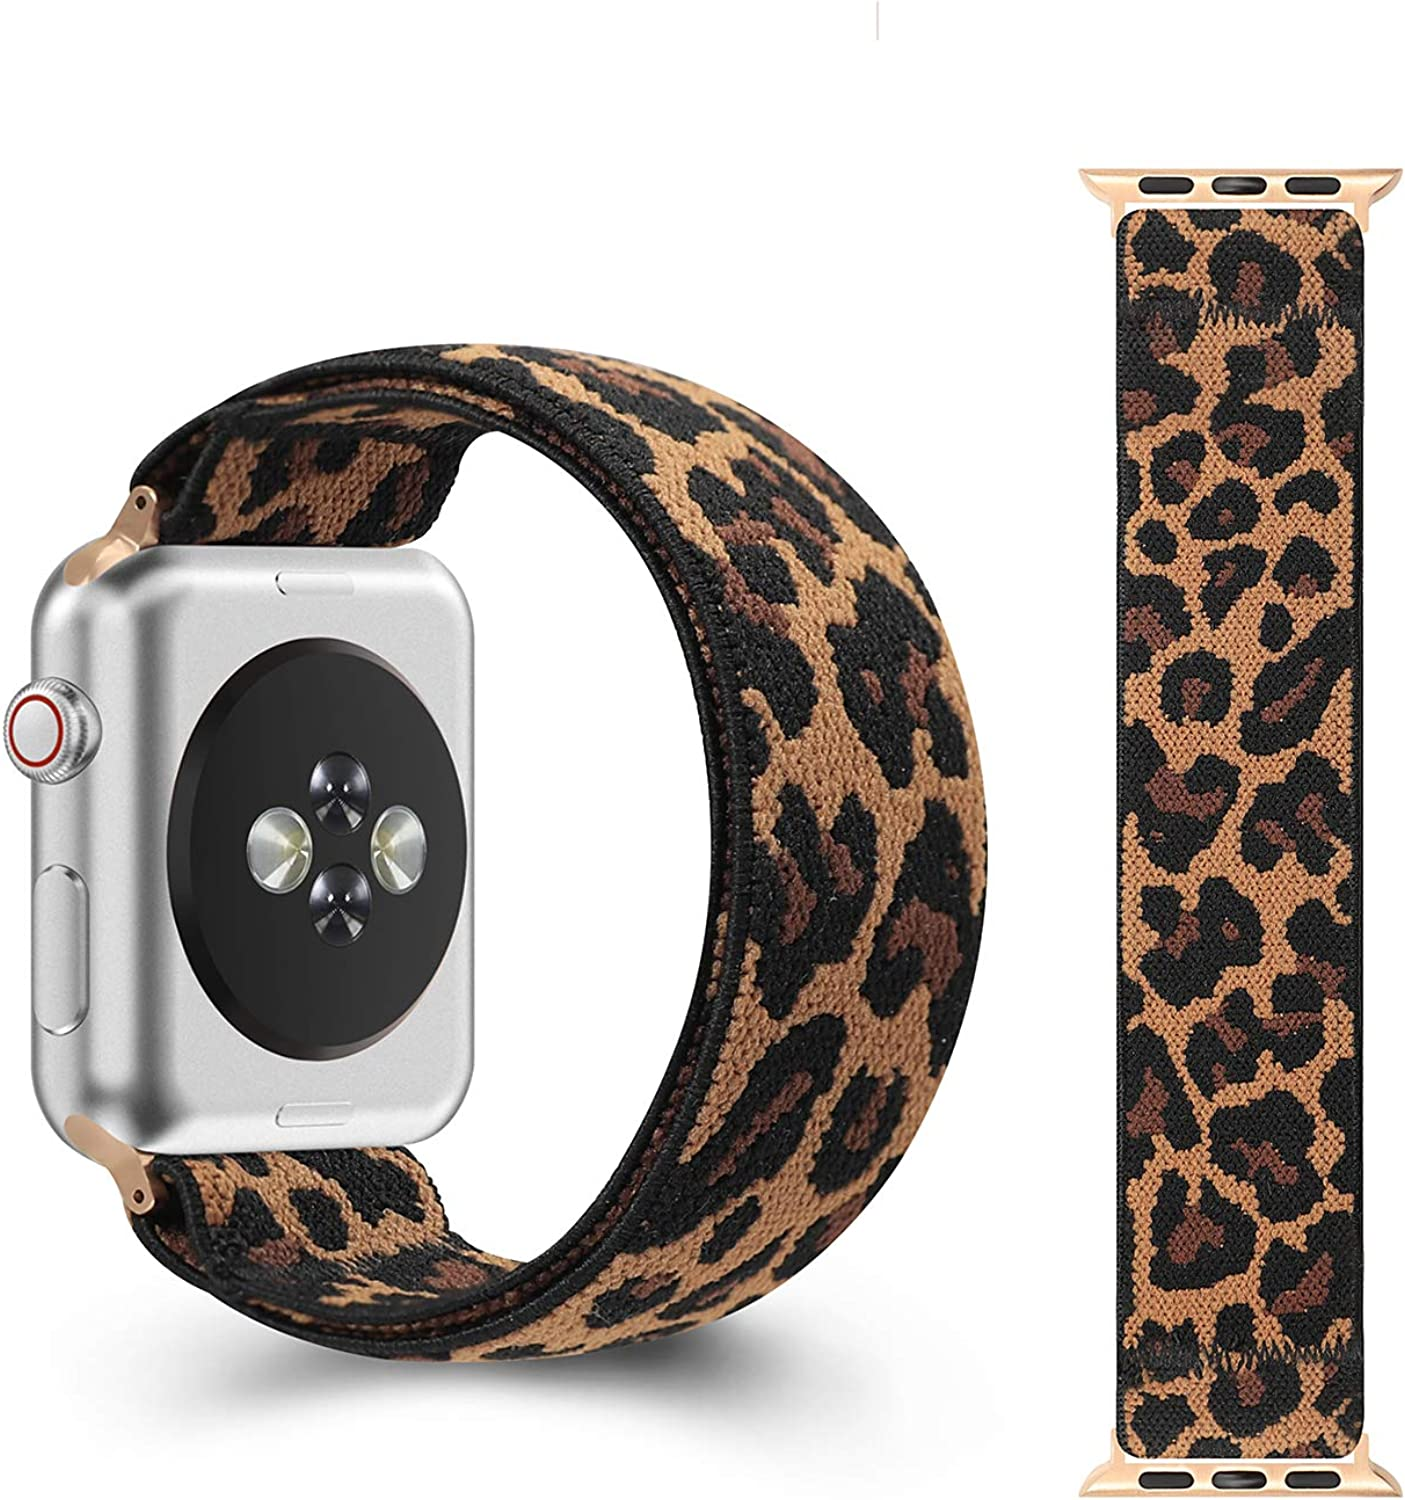 CreateGreat Classic Leopard Elastic Bands Compatible with Apple Watch 38MM,40MM, Double Side Pattern Stretch for iWatch Bands for Series 5 4 3 2 1 (38MM/40MM ONLY)